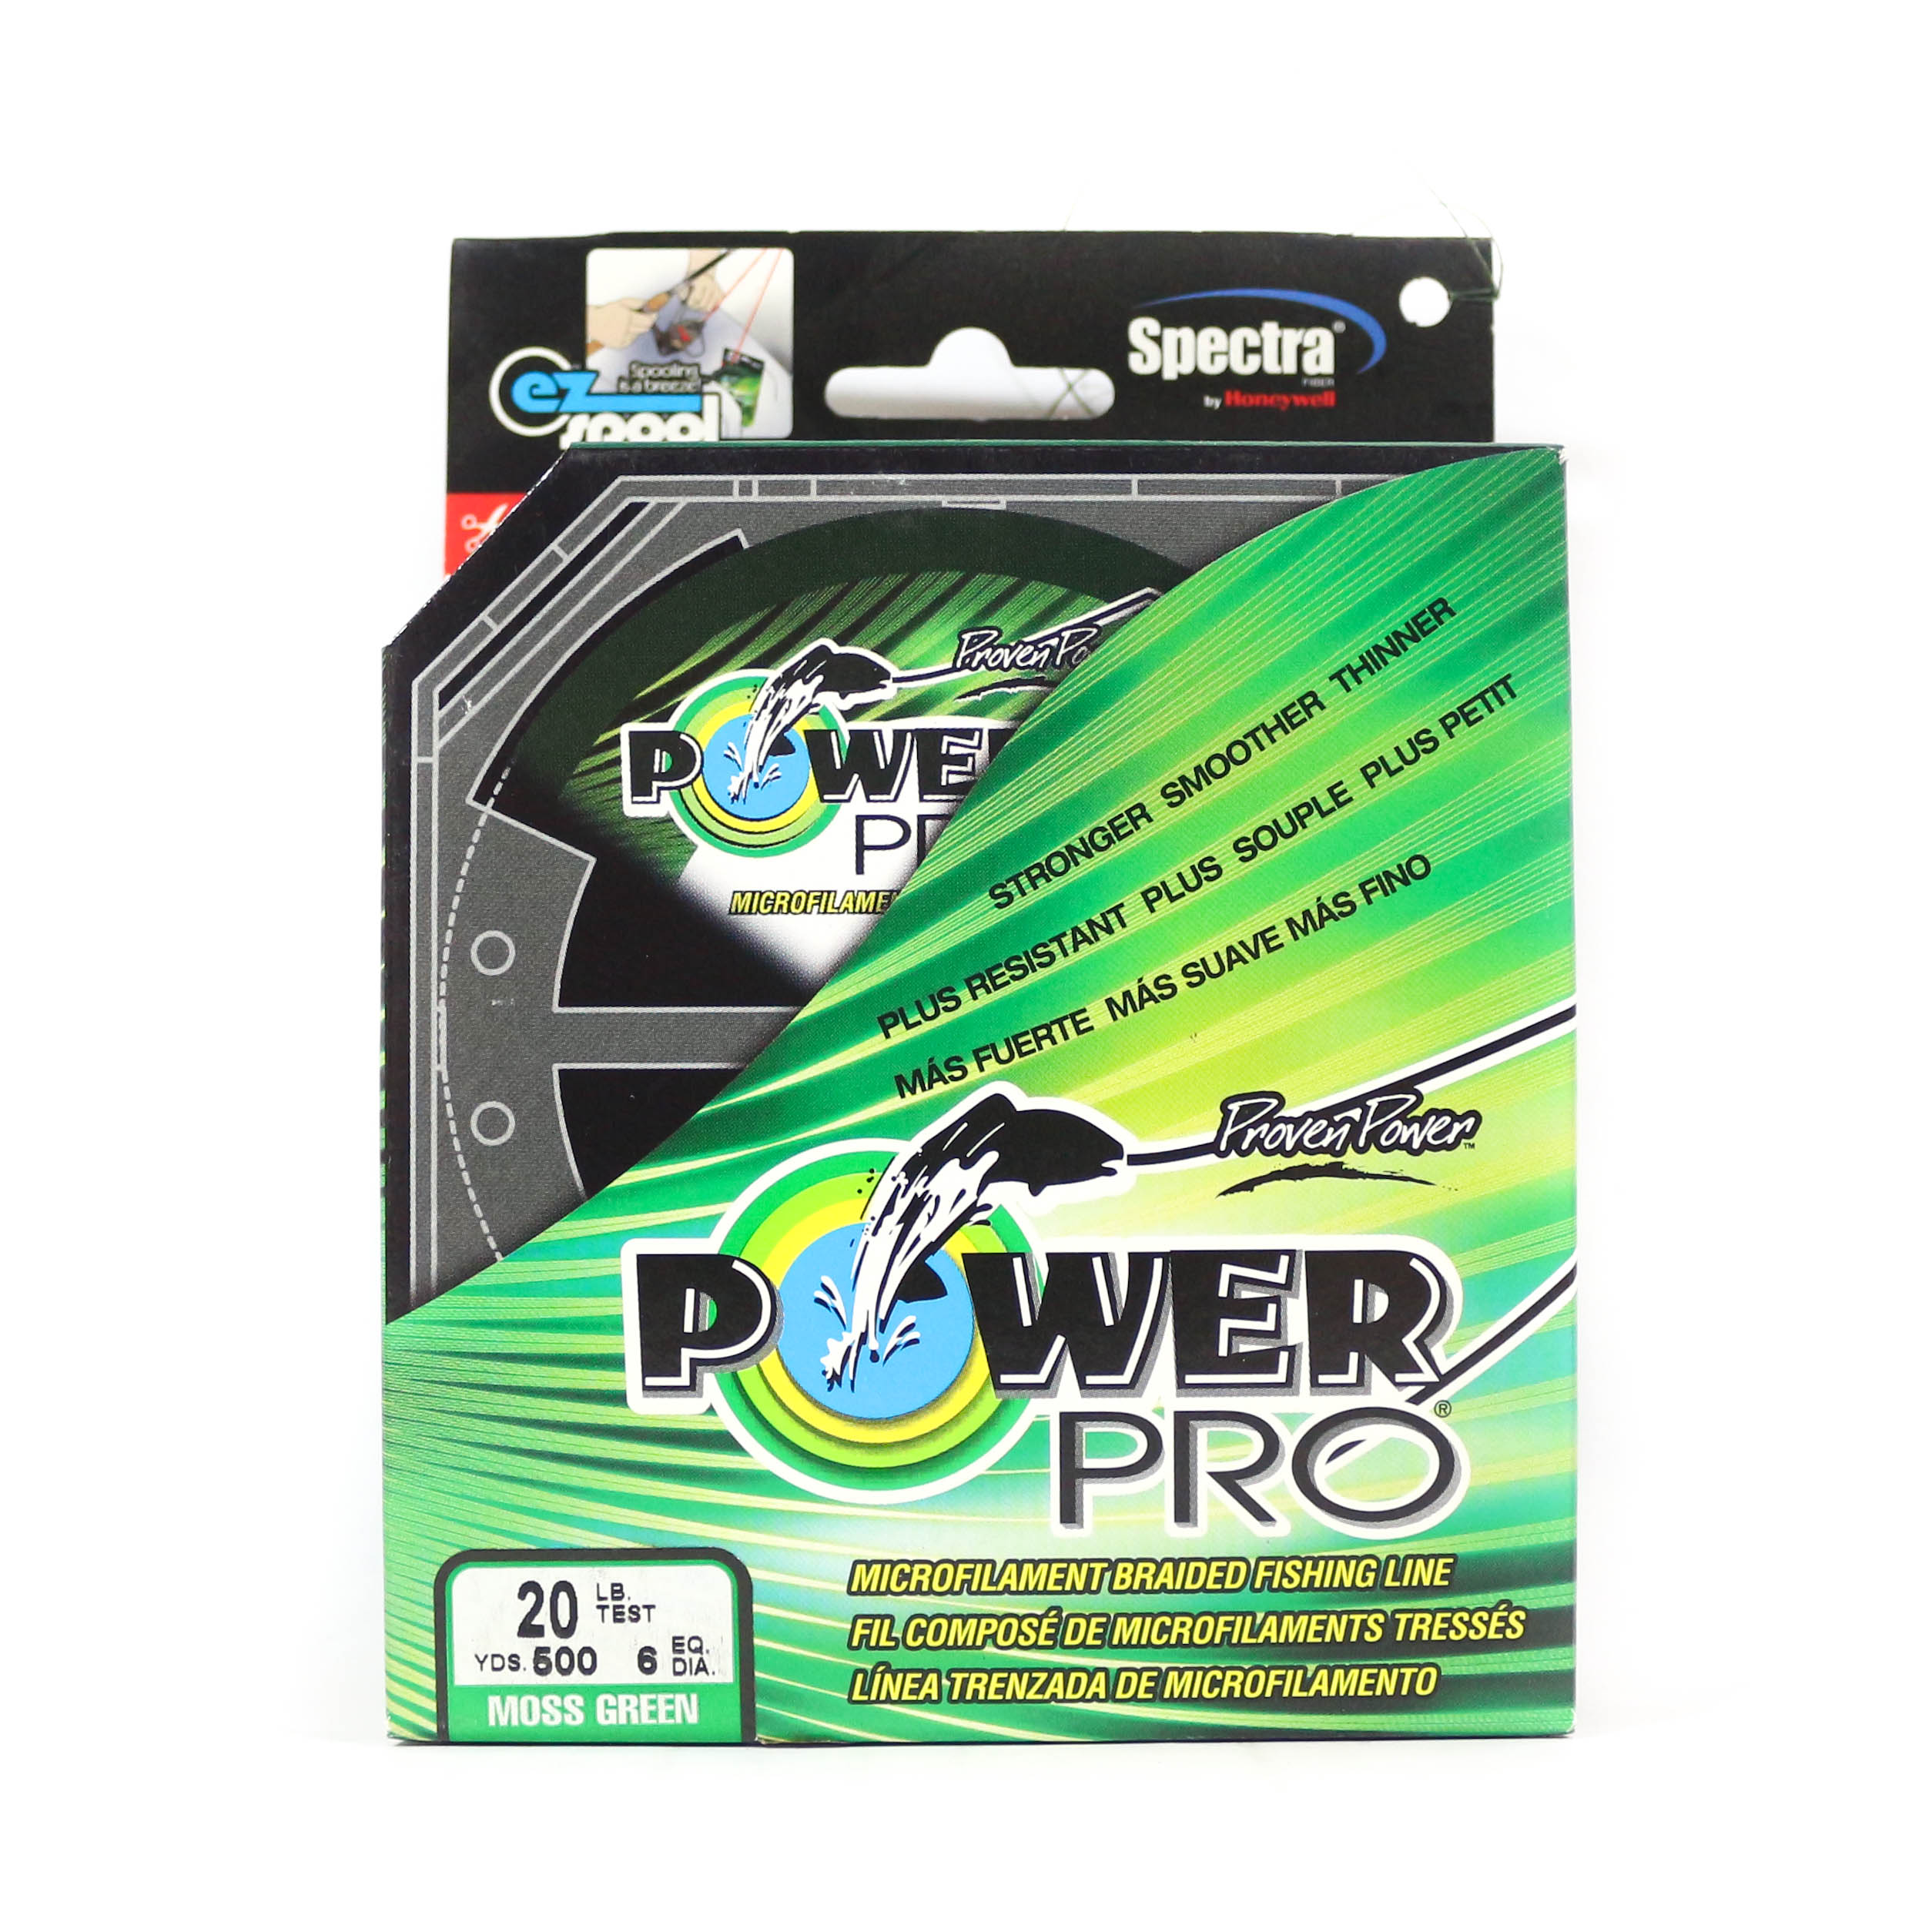 Power Pro Braided Spectra Line 20lb by 500yds Green (1207)